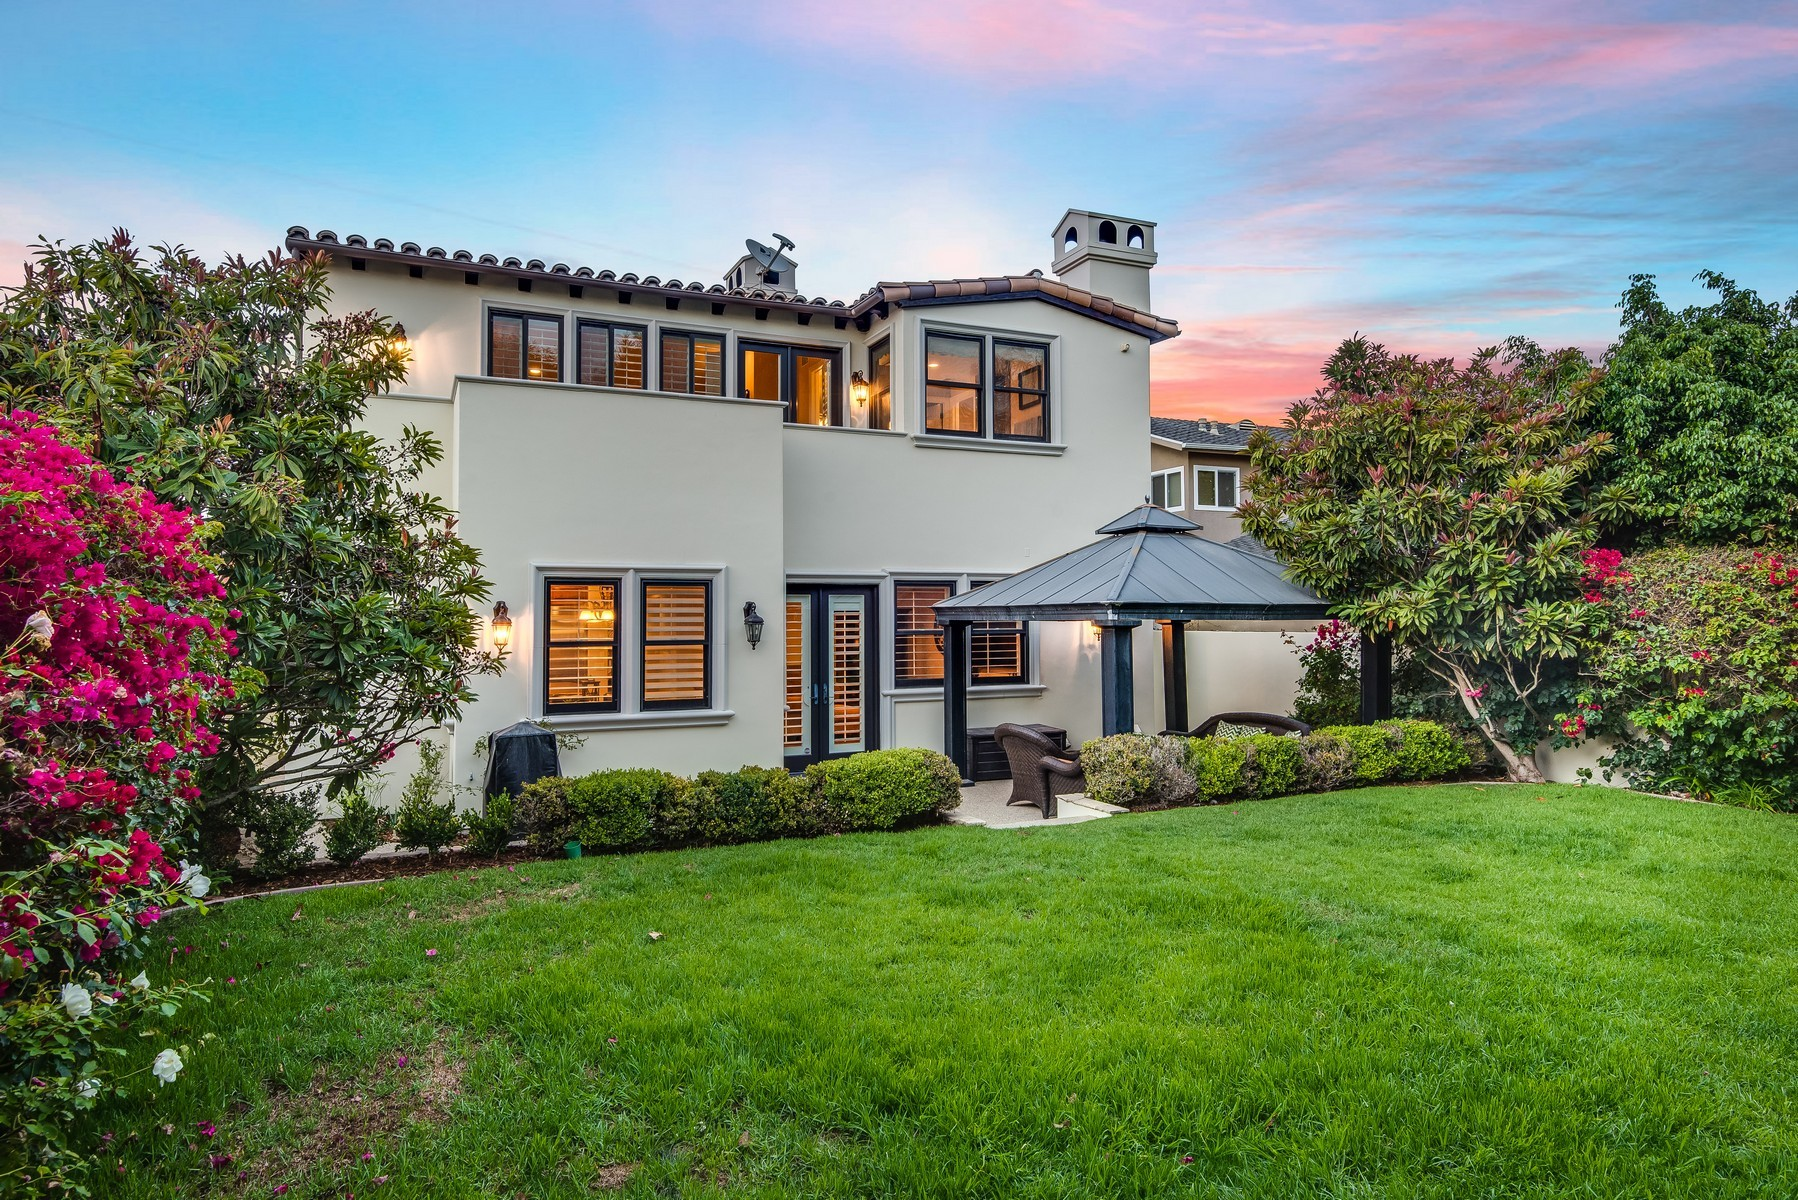 Single Family Home for Sale at 1506 Gates Ave Manhattan Beach, California 90266 United States